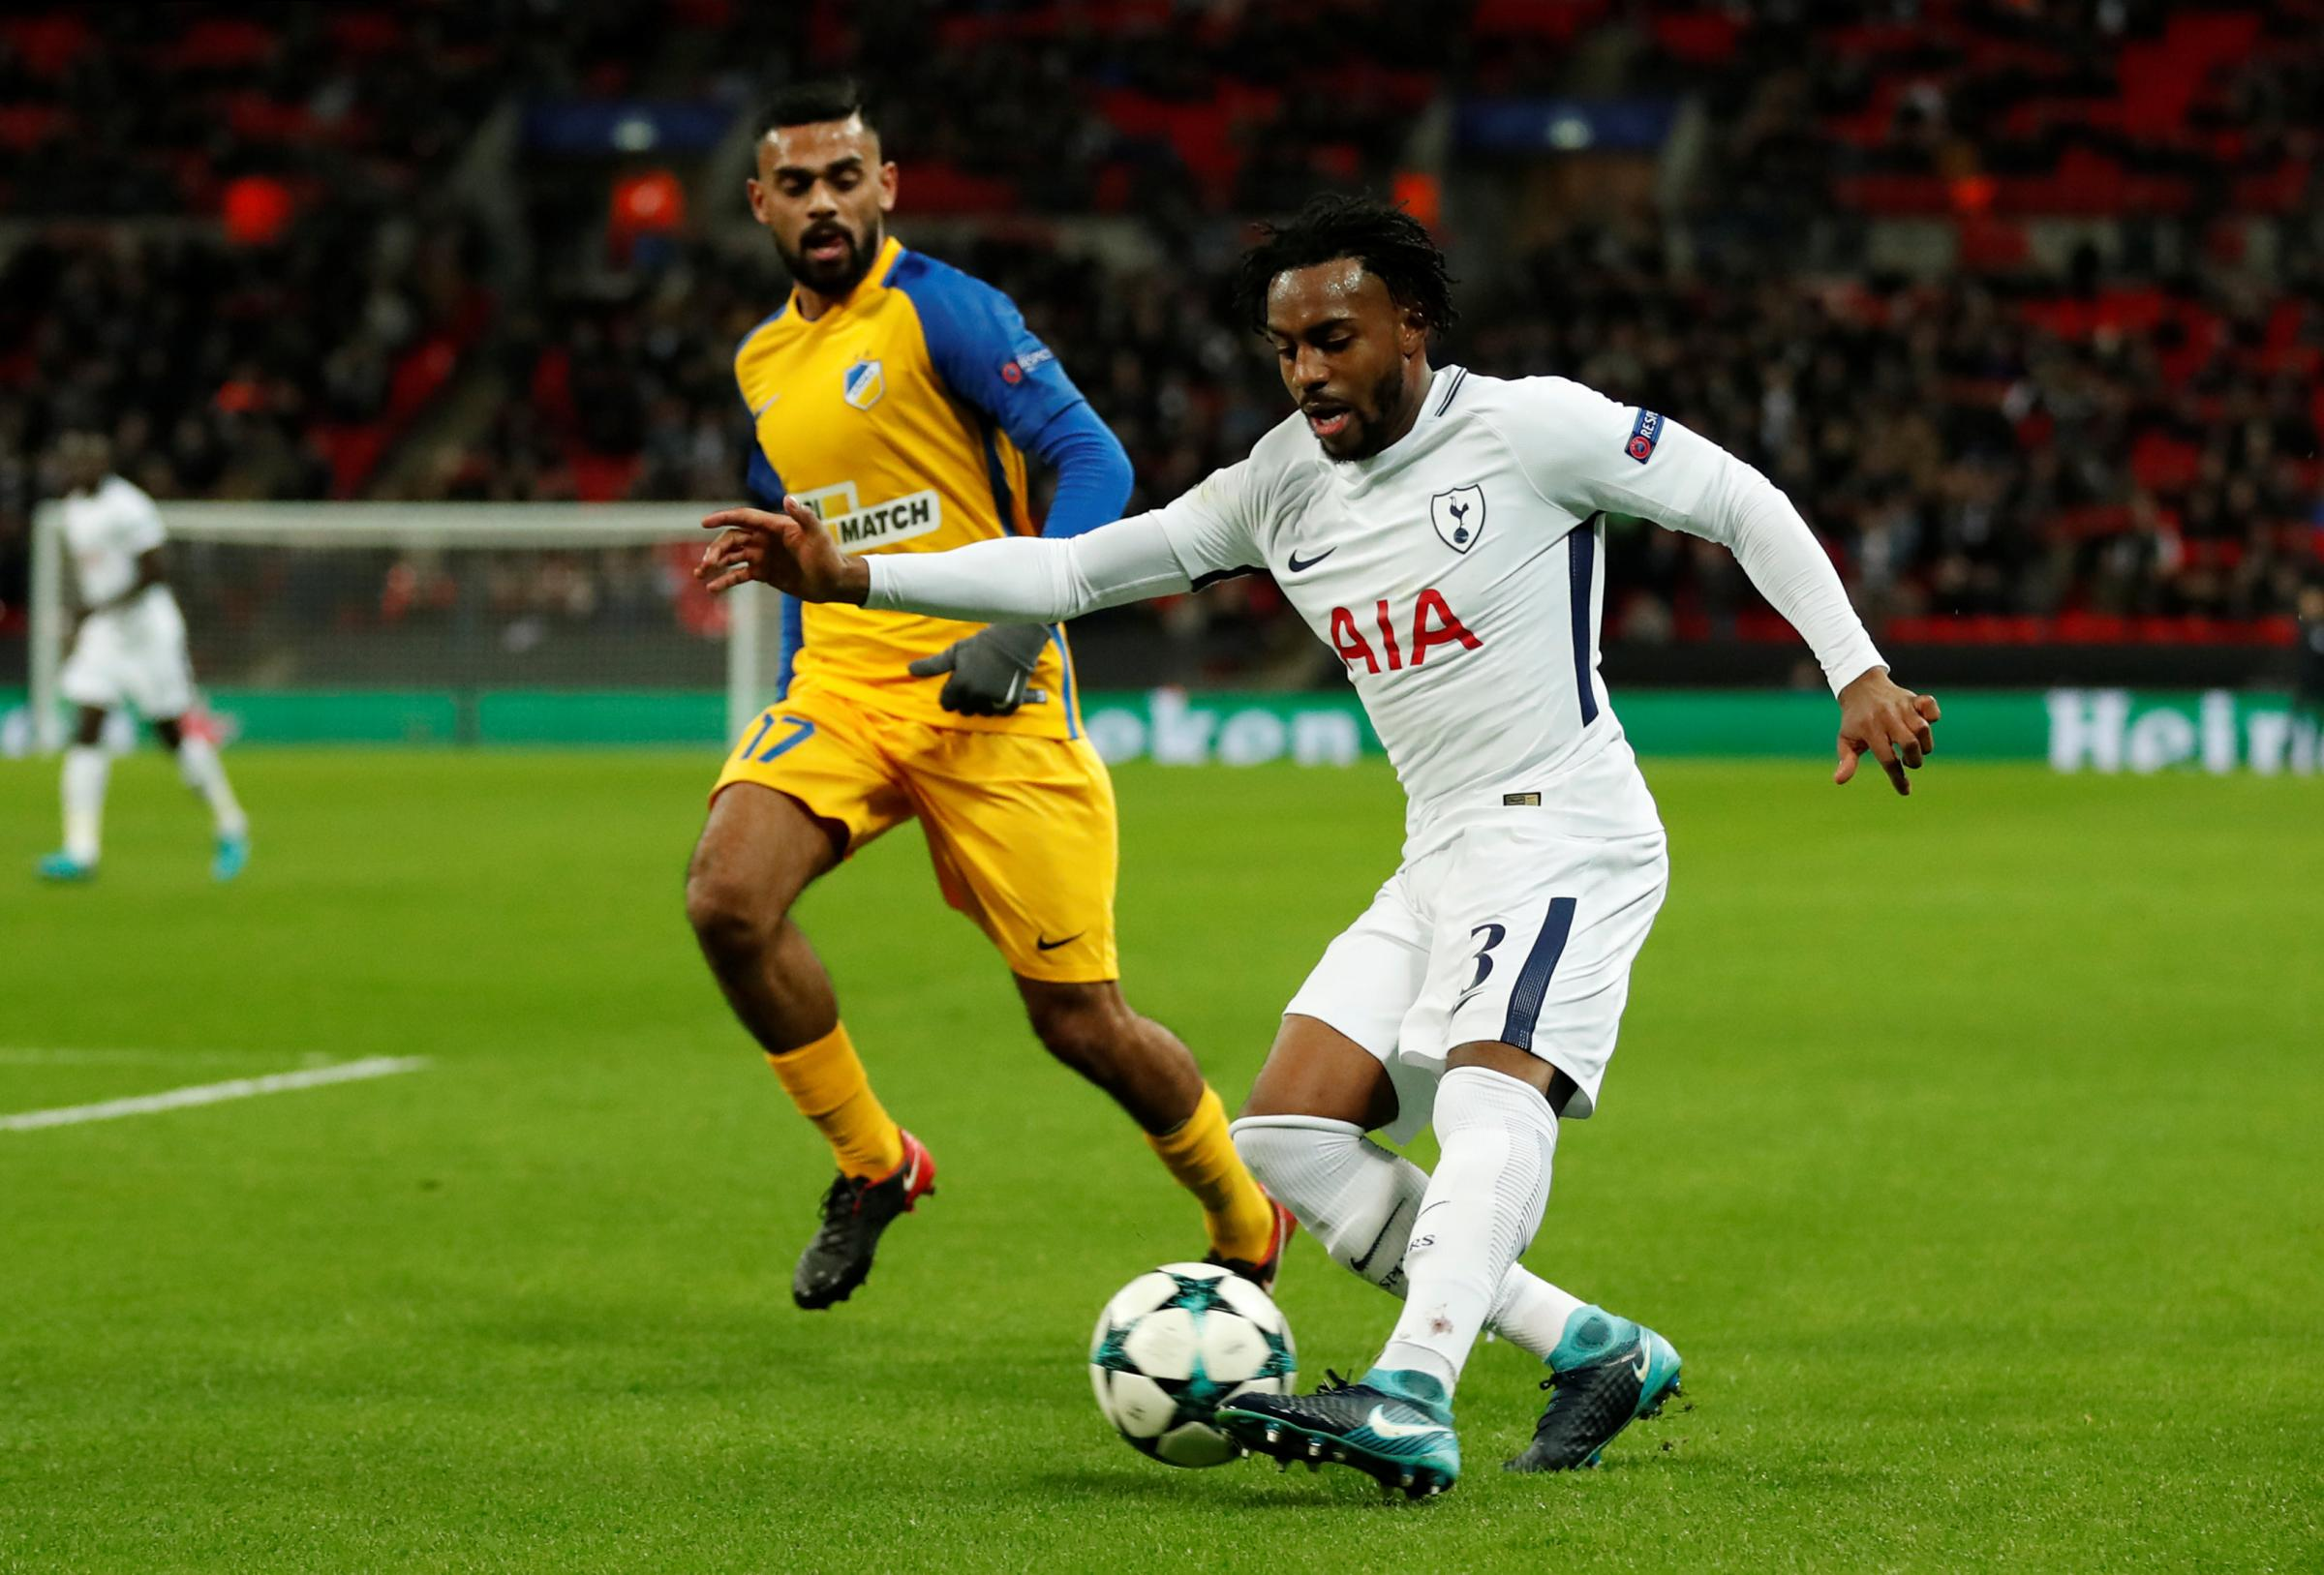 Danny Rose in action against Apoel Nicosia last night. Picture: Action Images